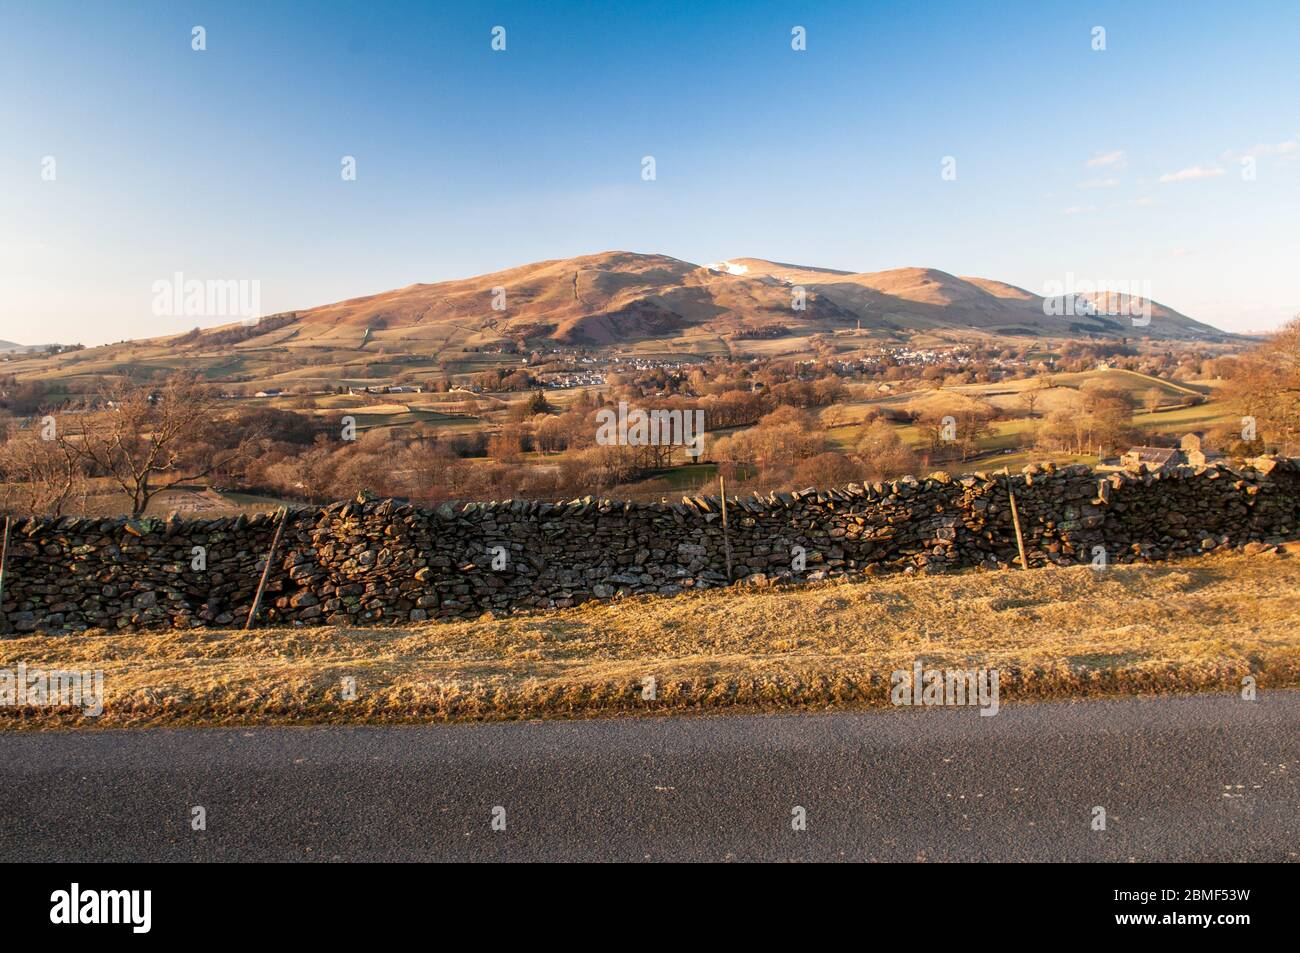 The snow-capped Howgill Fells hills rise bind the town of Sedbergh in the Yorkshire Dales National Park. Stock Photo